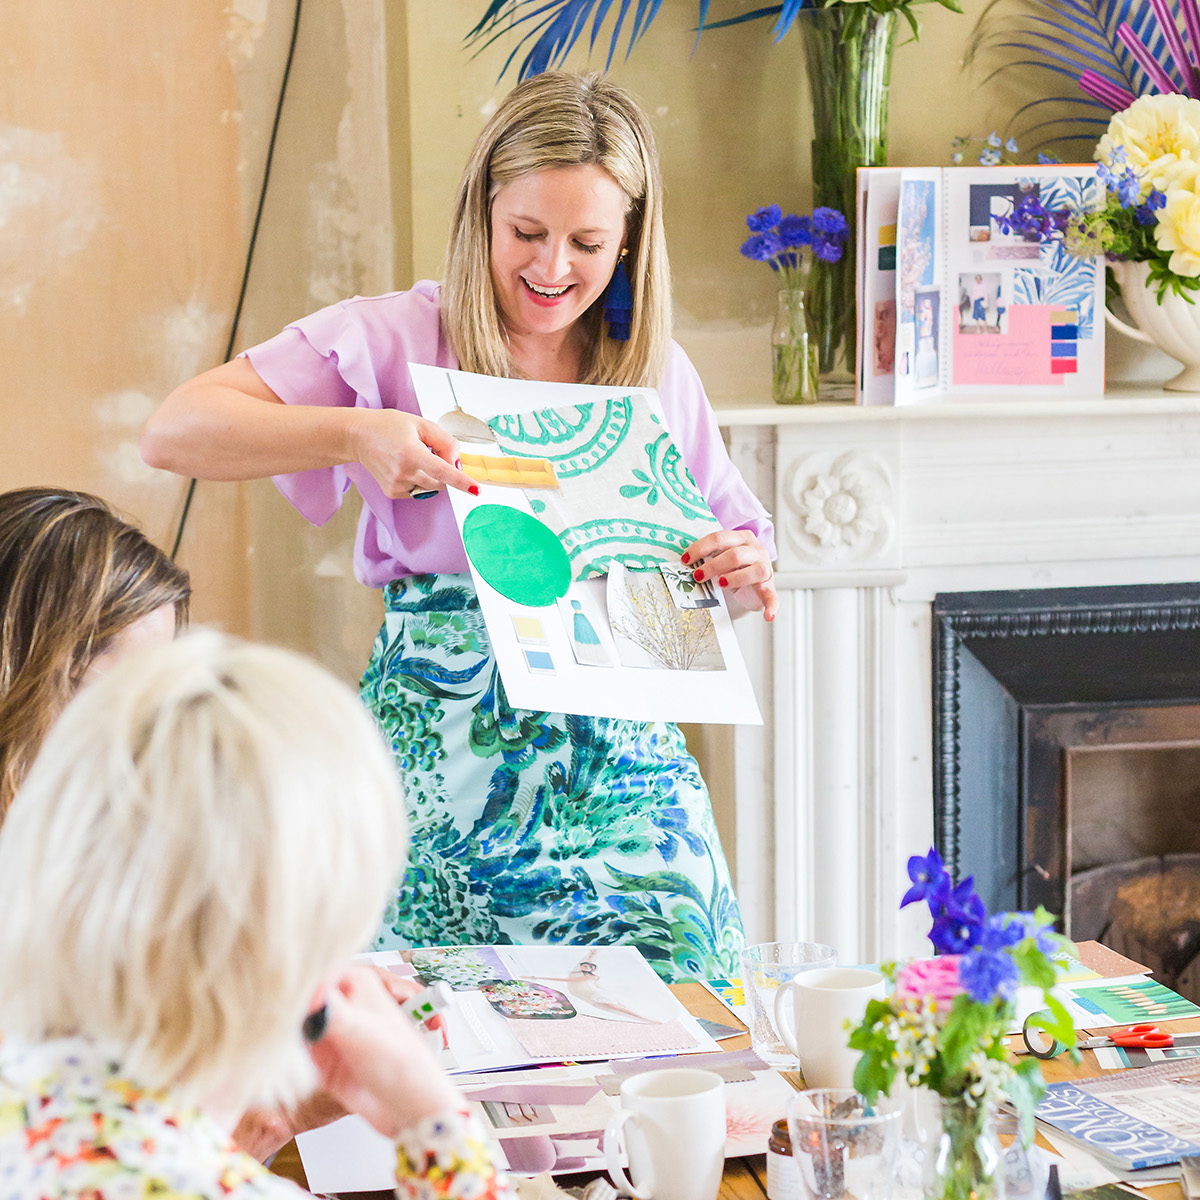 Interior designer Sophie Robinson showing a moodboard on her workshop. Distressed walls, large leaves and flowers in bright colours